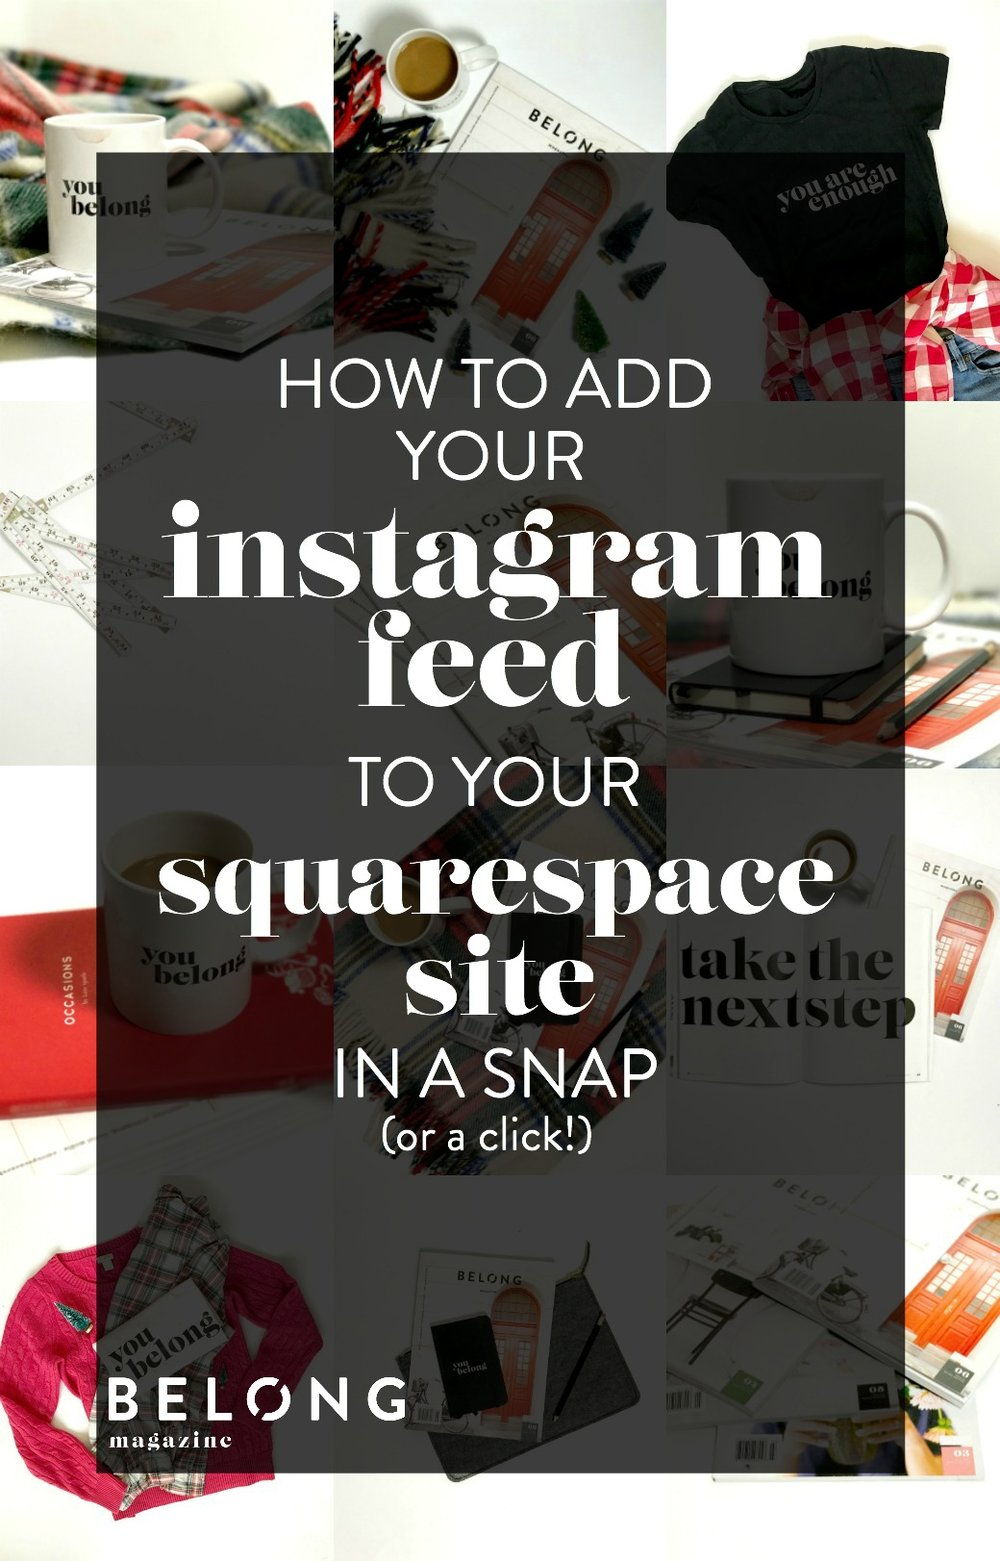 how to add your instagram feed to your squarespace site in a snap (or a click) with Belong Magazine on Belong Mag Blog - female entrepreneur, lady boss, women in business, website, design